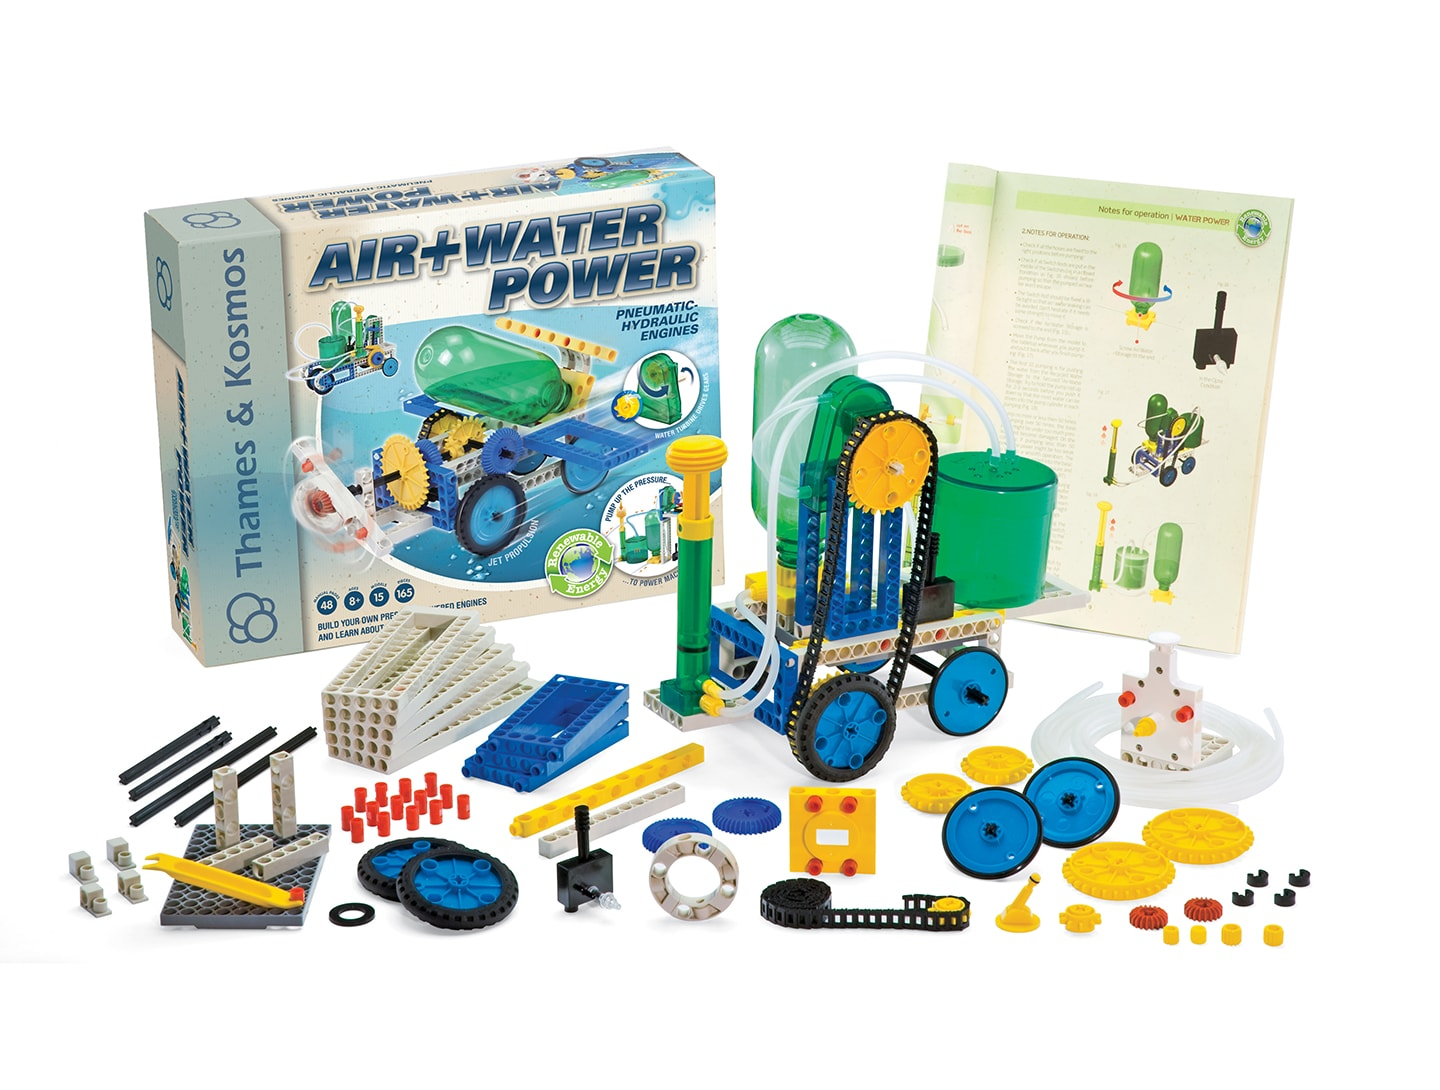 Air and Water power kit